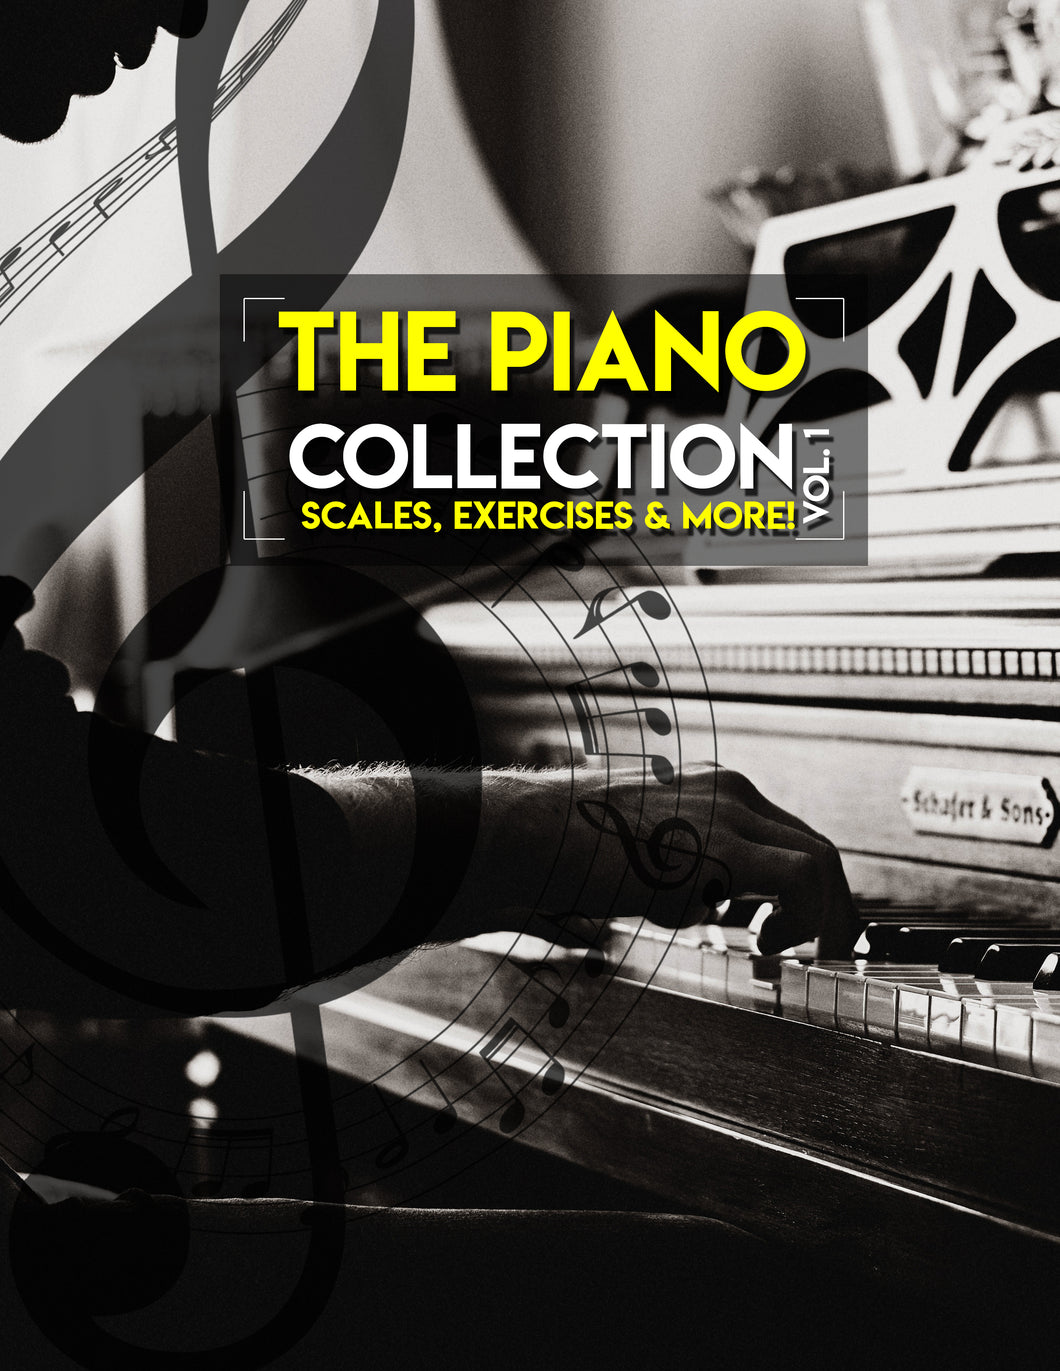 The Piano Collection Volume 1 - eBook Super Sale!